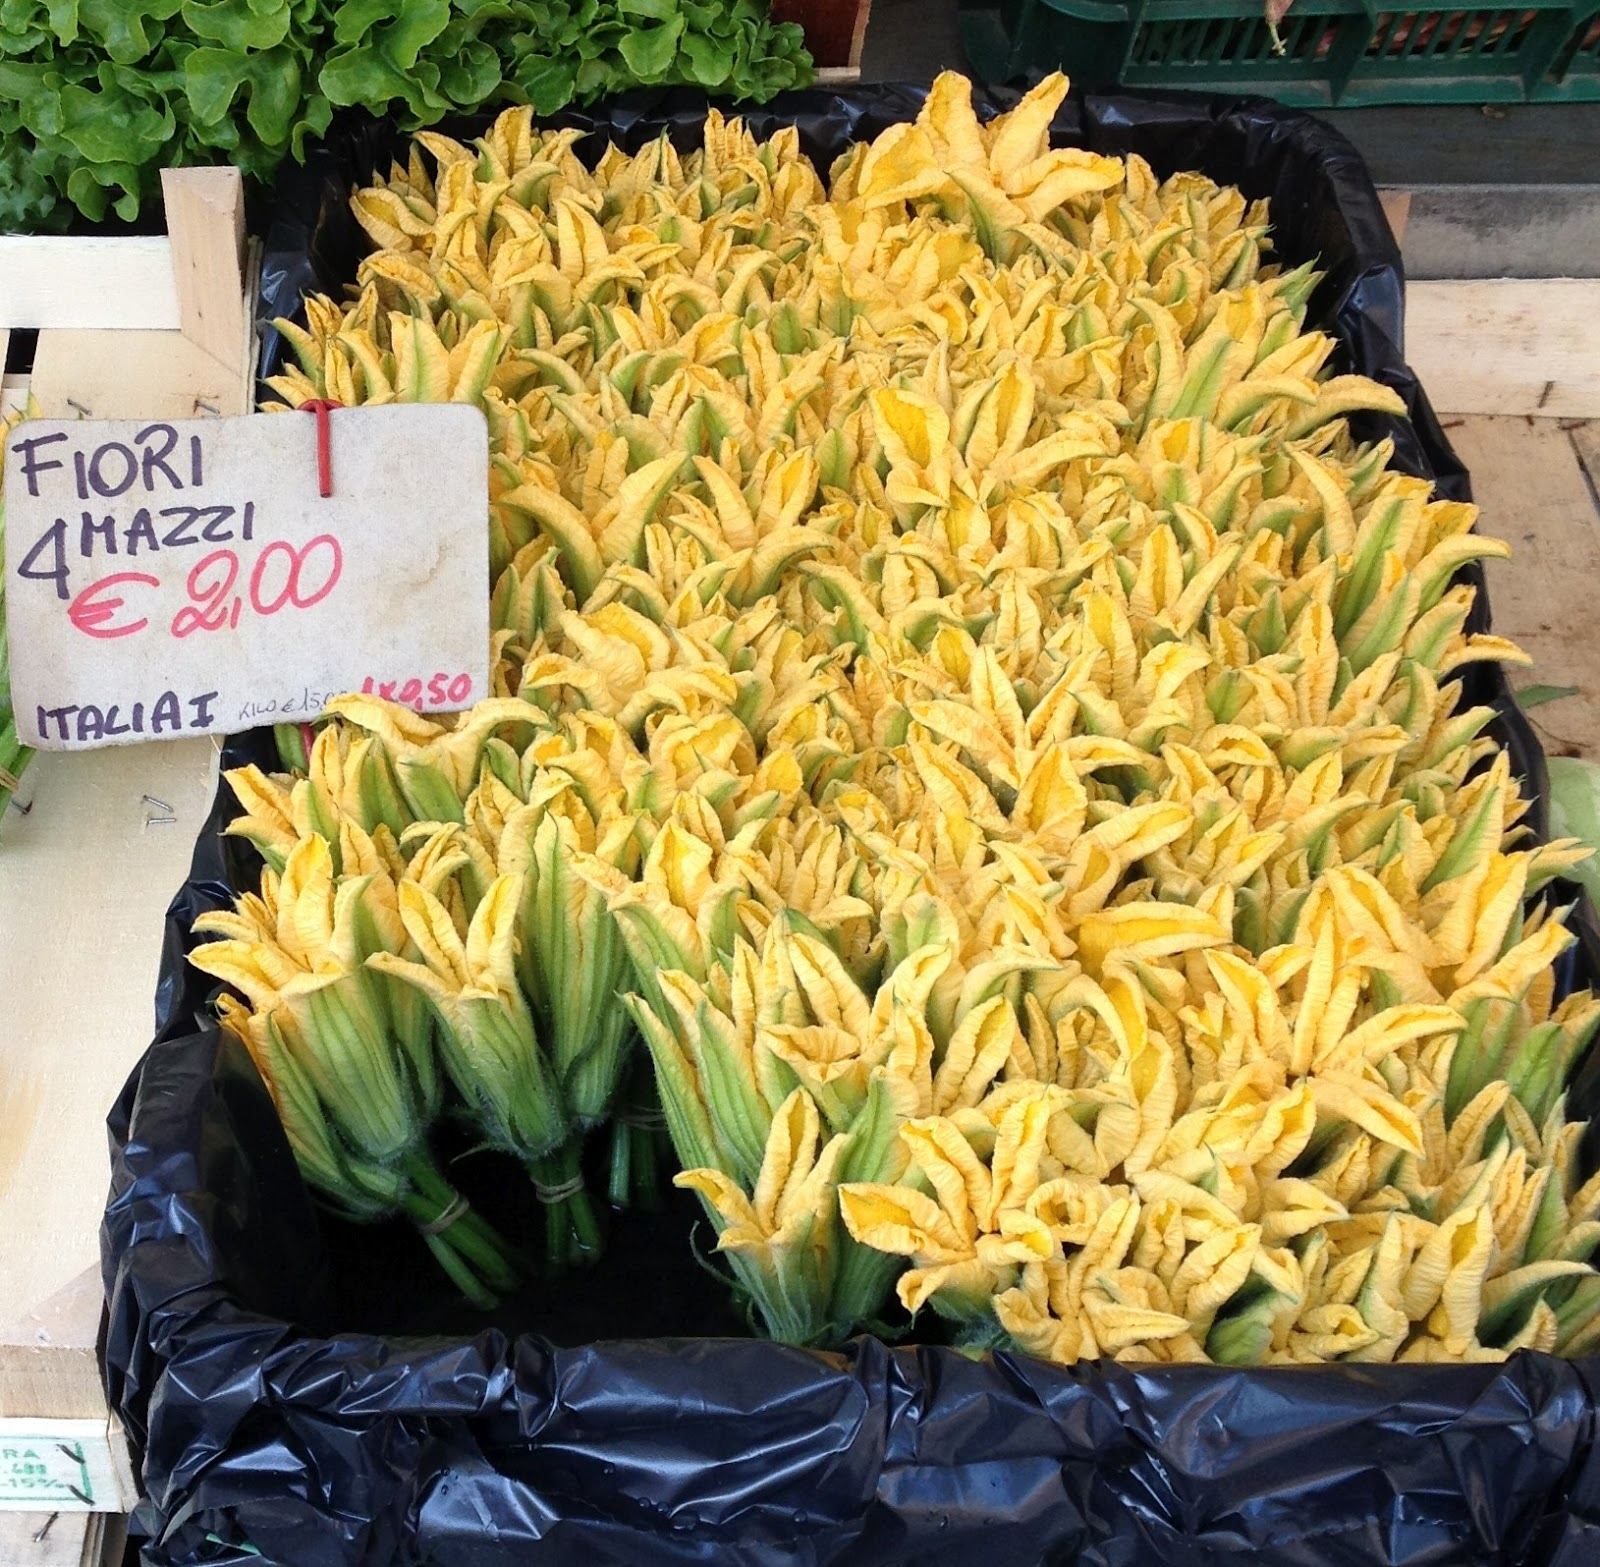 garden at heart Zucchini flowers from Italy